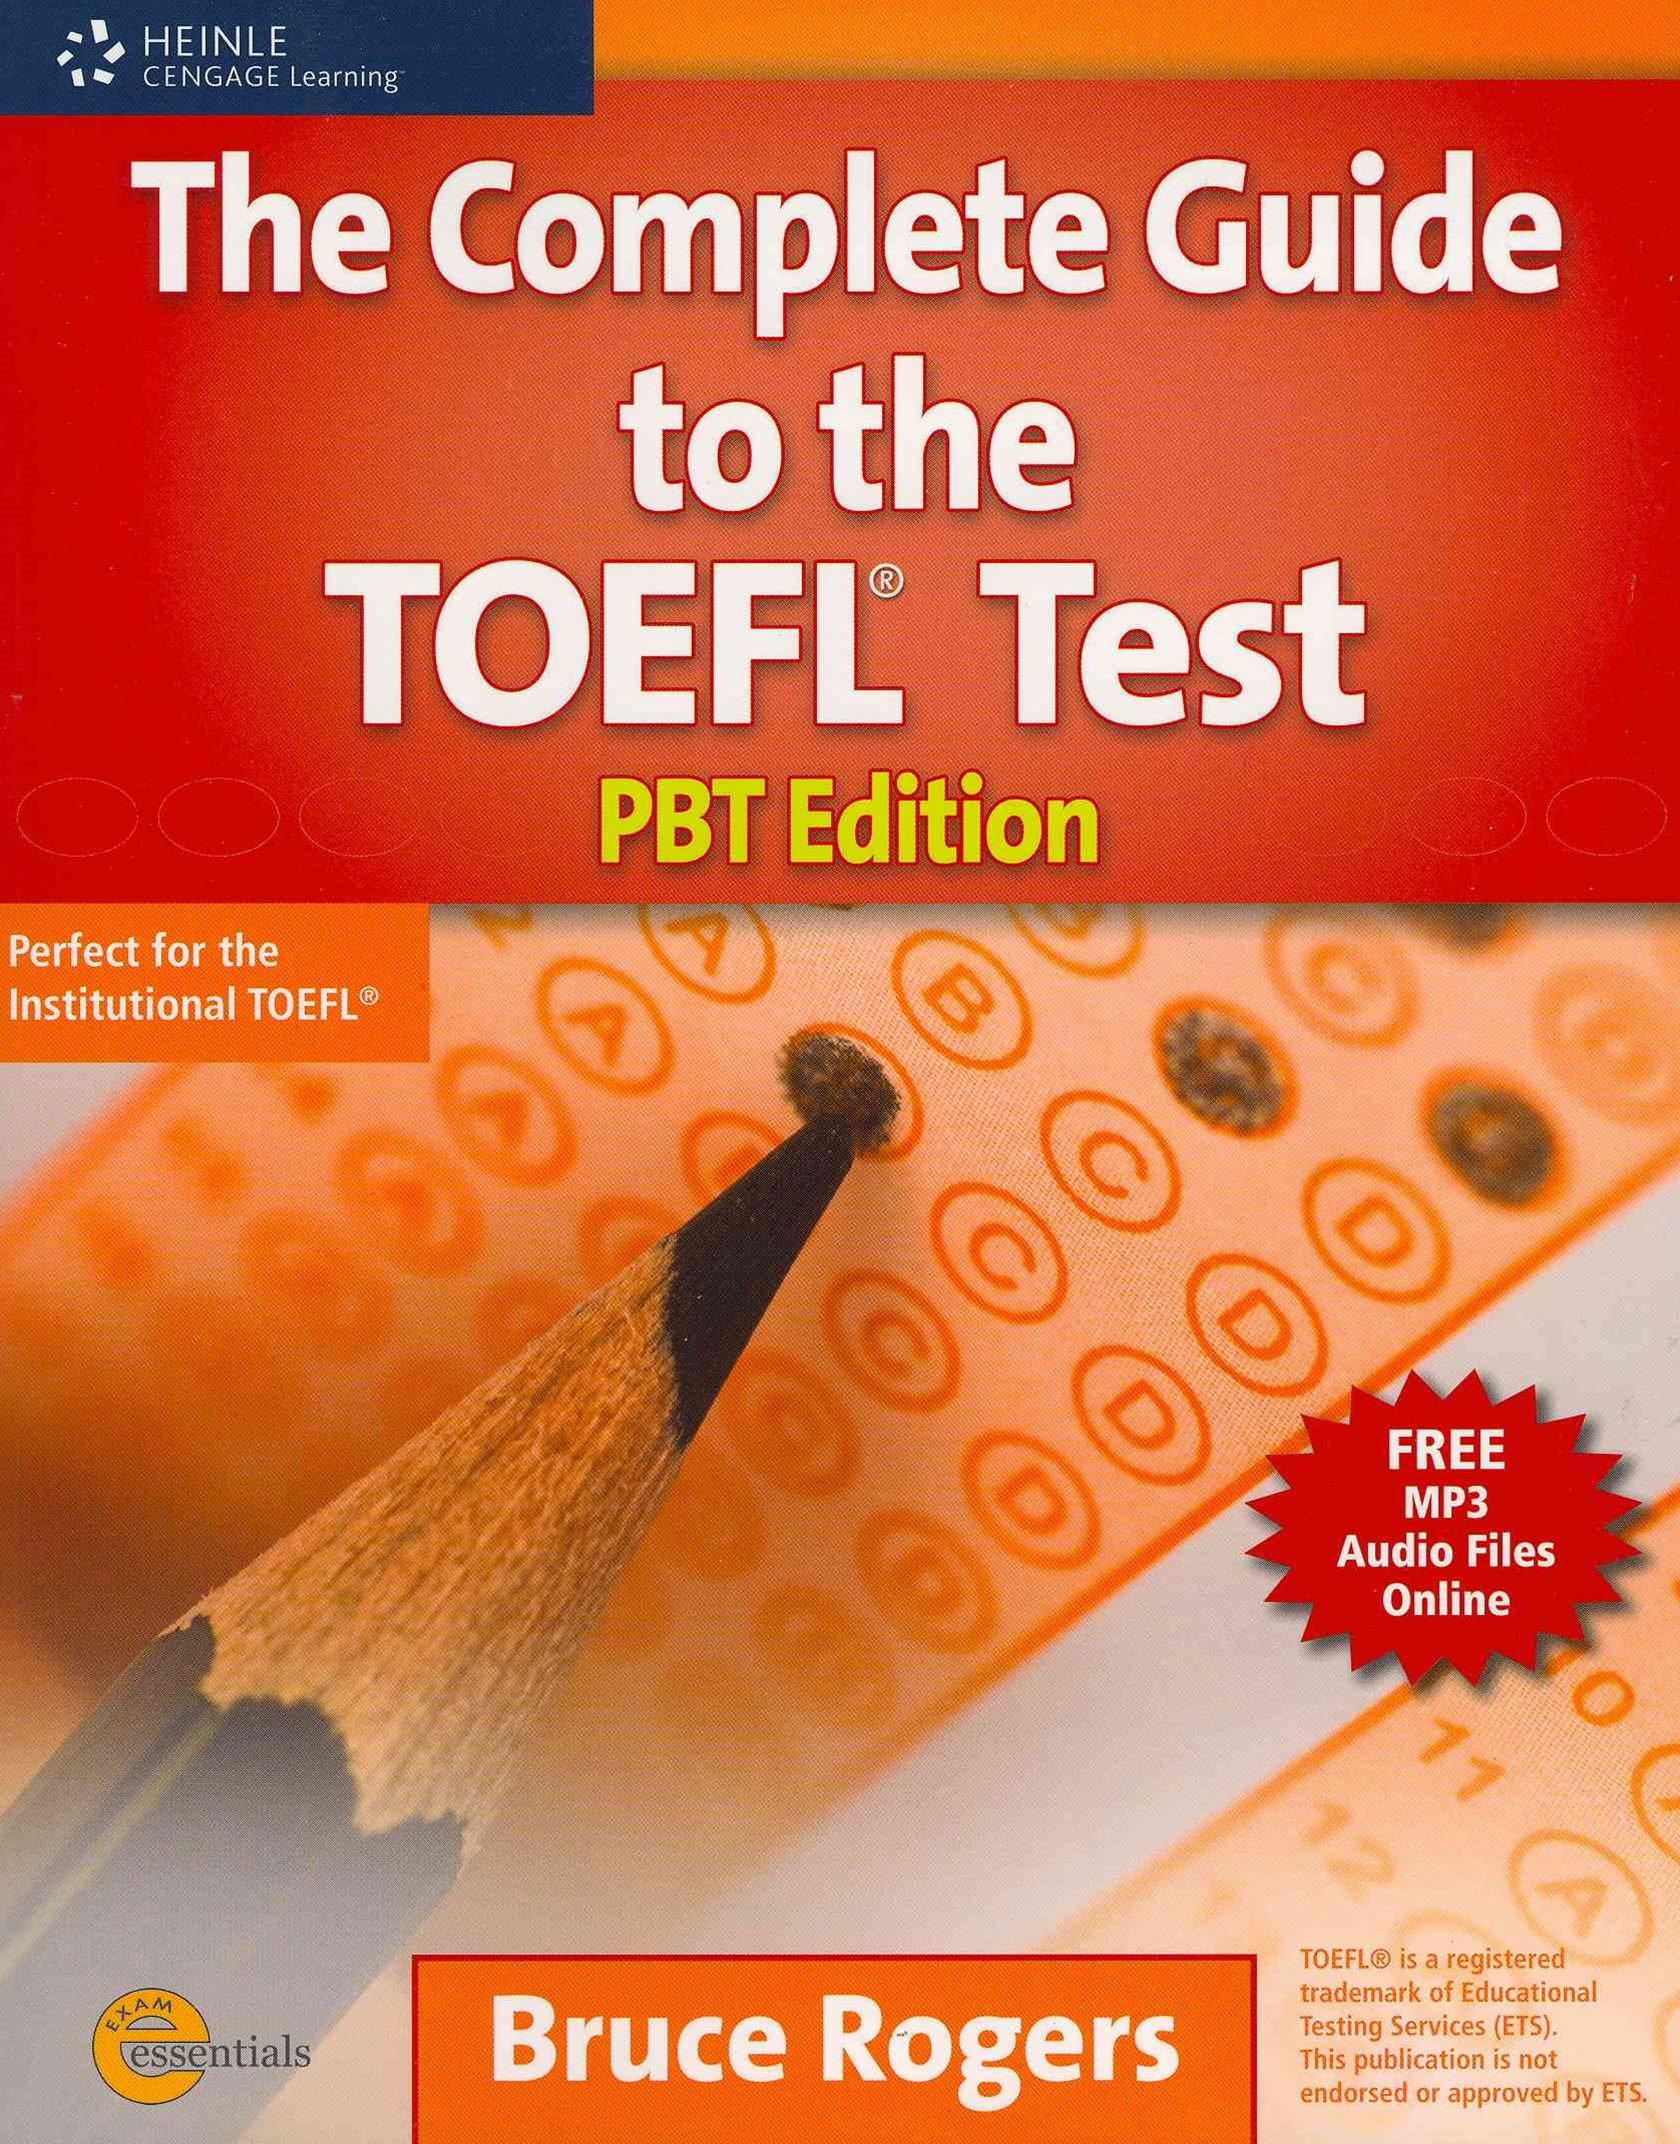 The Complete Guide to the TOEFL© Test : PBT Edition